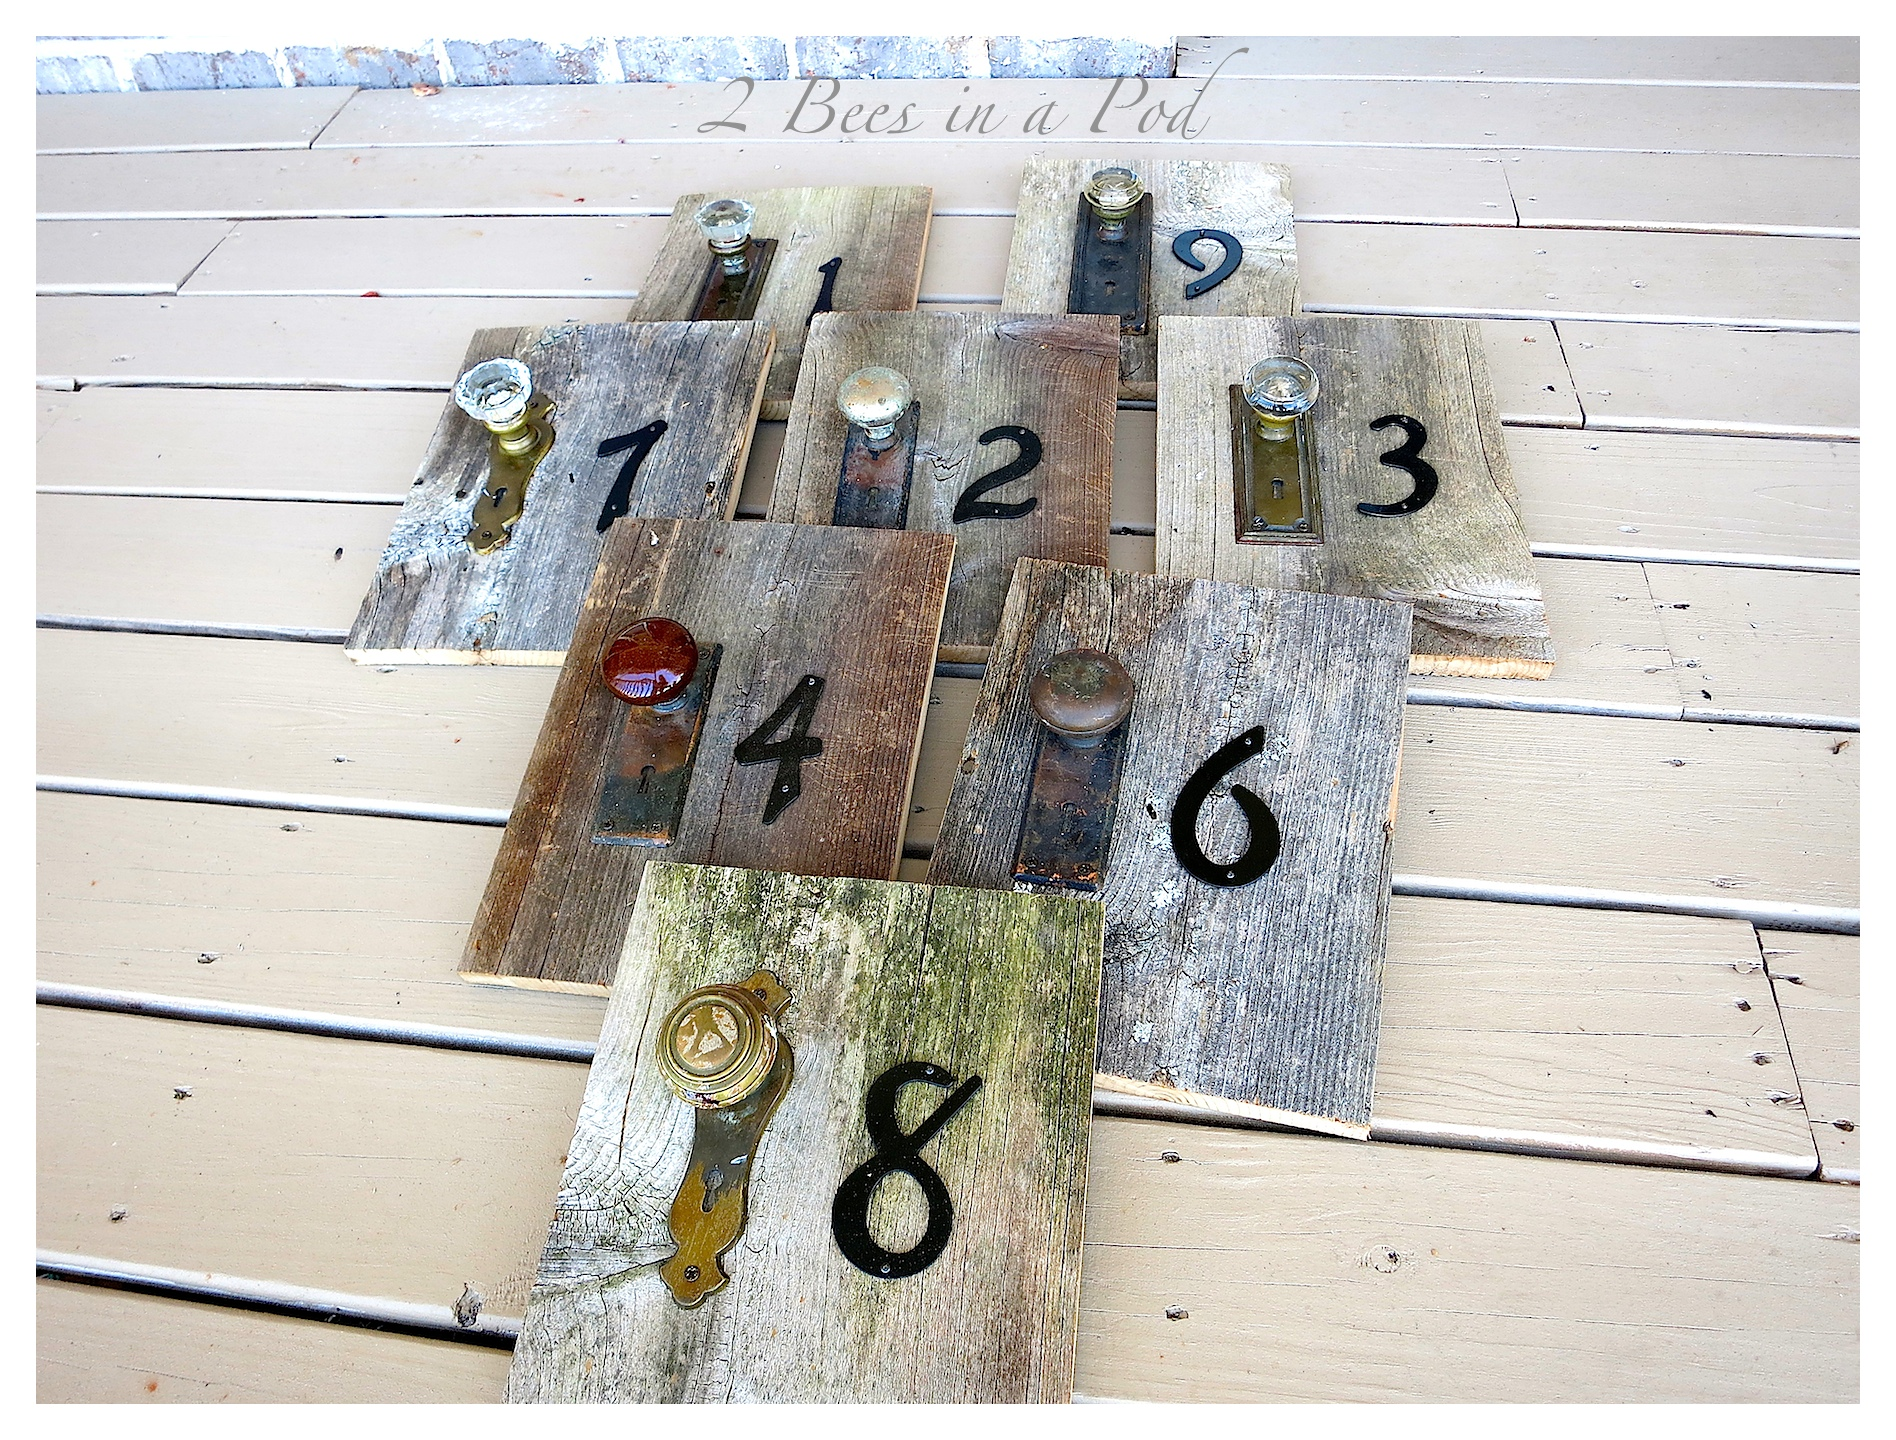 DIY Wedding Table numbers. We used old fencing, vintage door knobs, vintage escutcheons, and metal numbers to create unique table numbers for the reception.